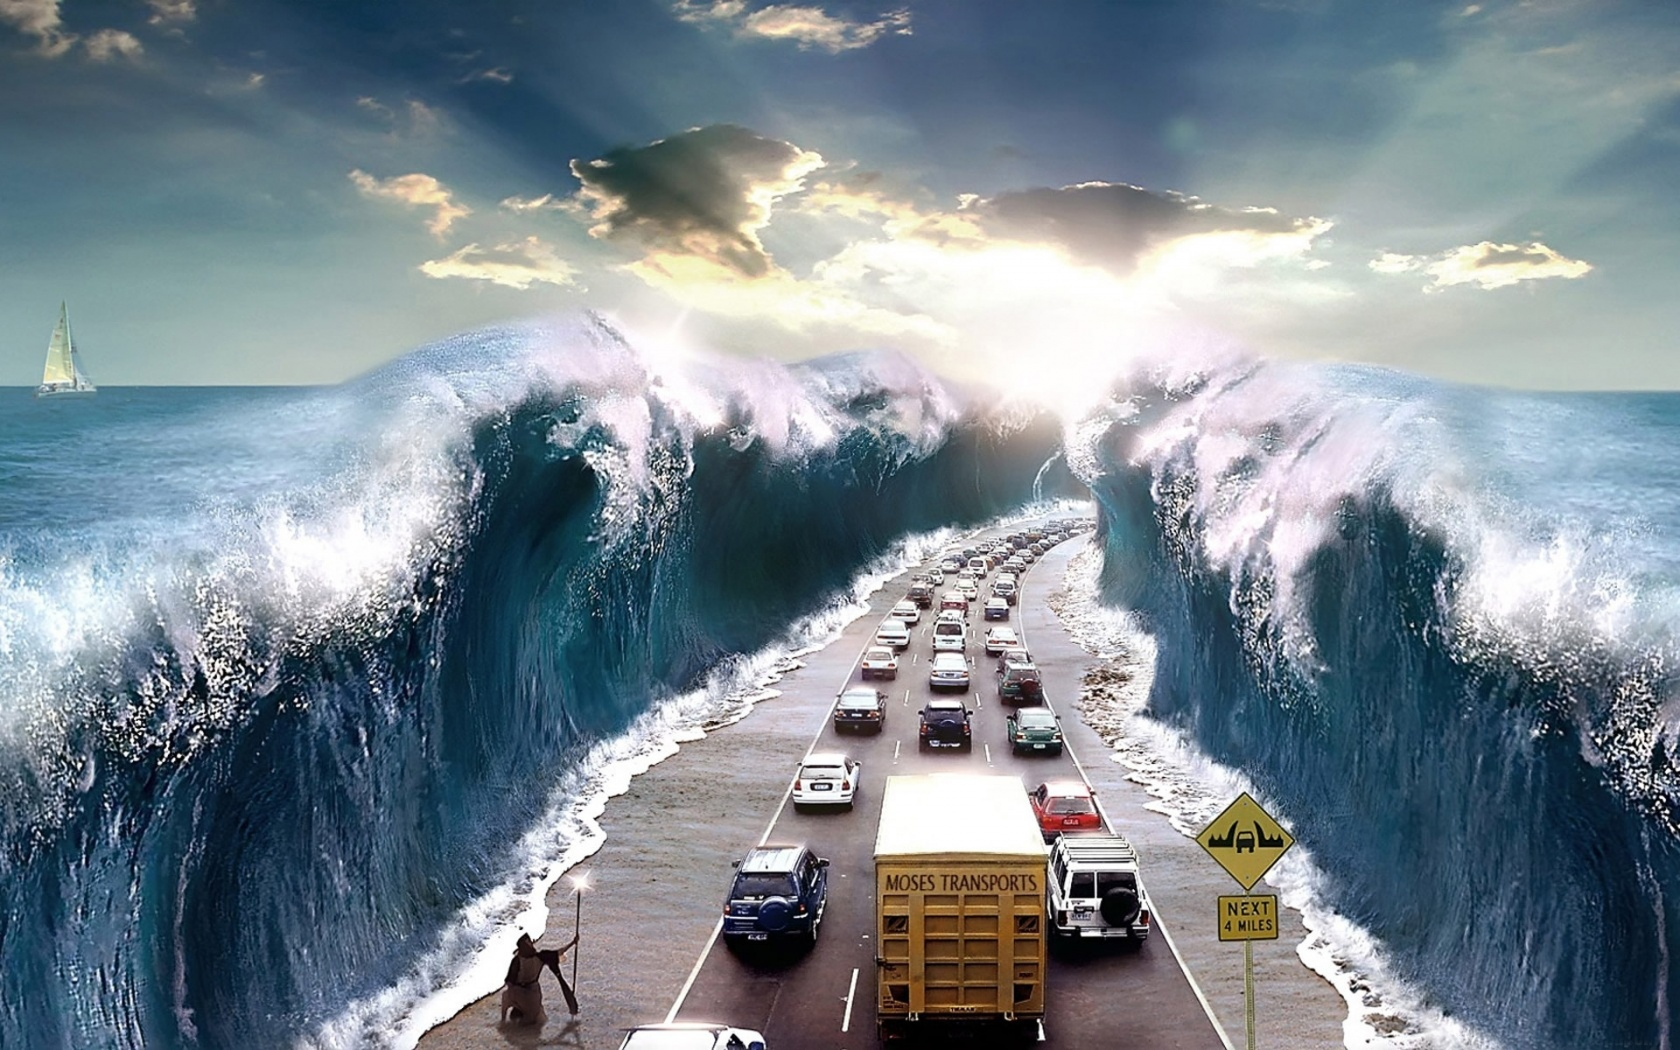 Surreal Traffic City Top Beautiful Examples Photo Manipulation Using Photoshop